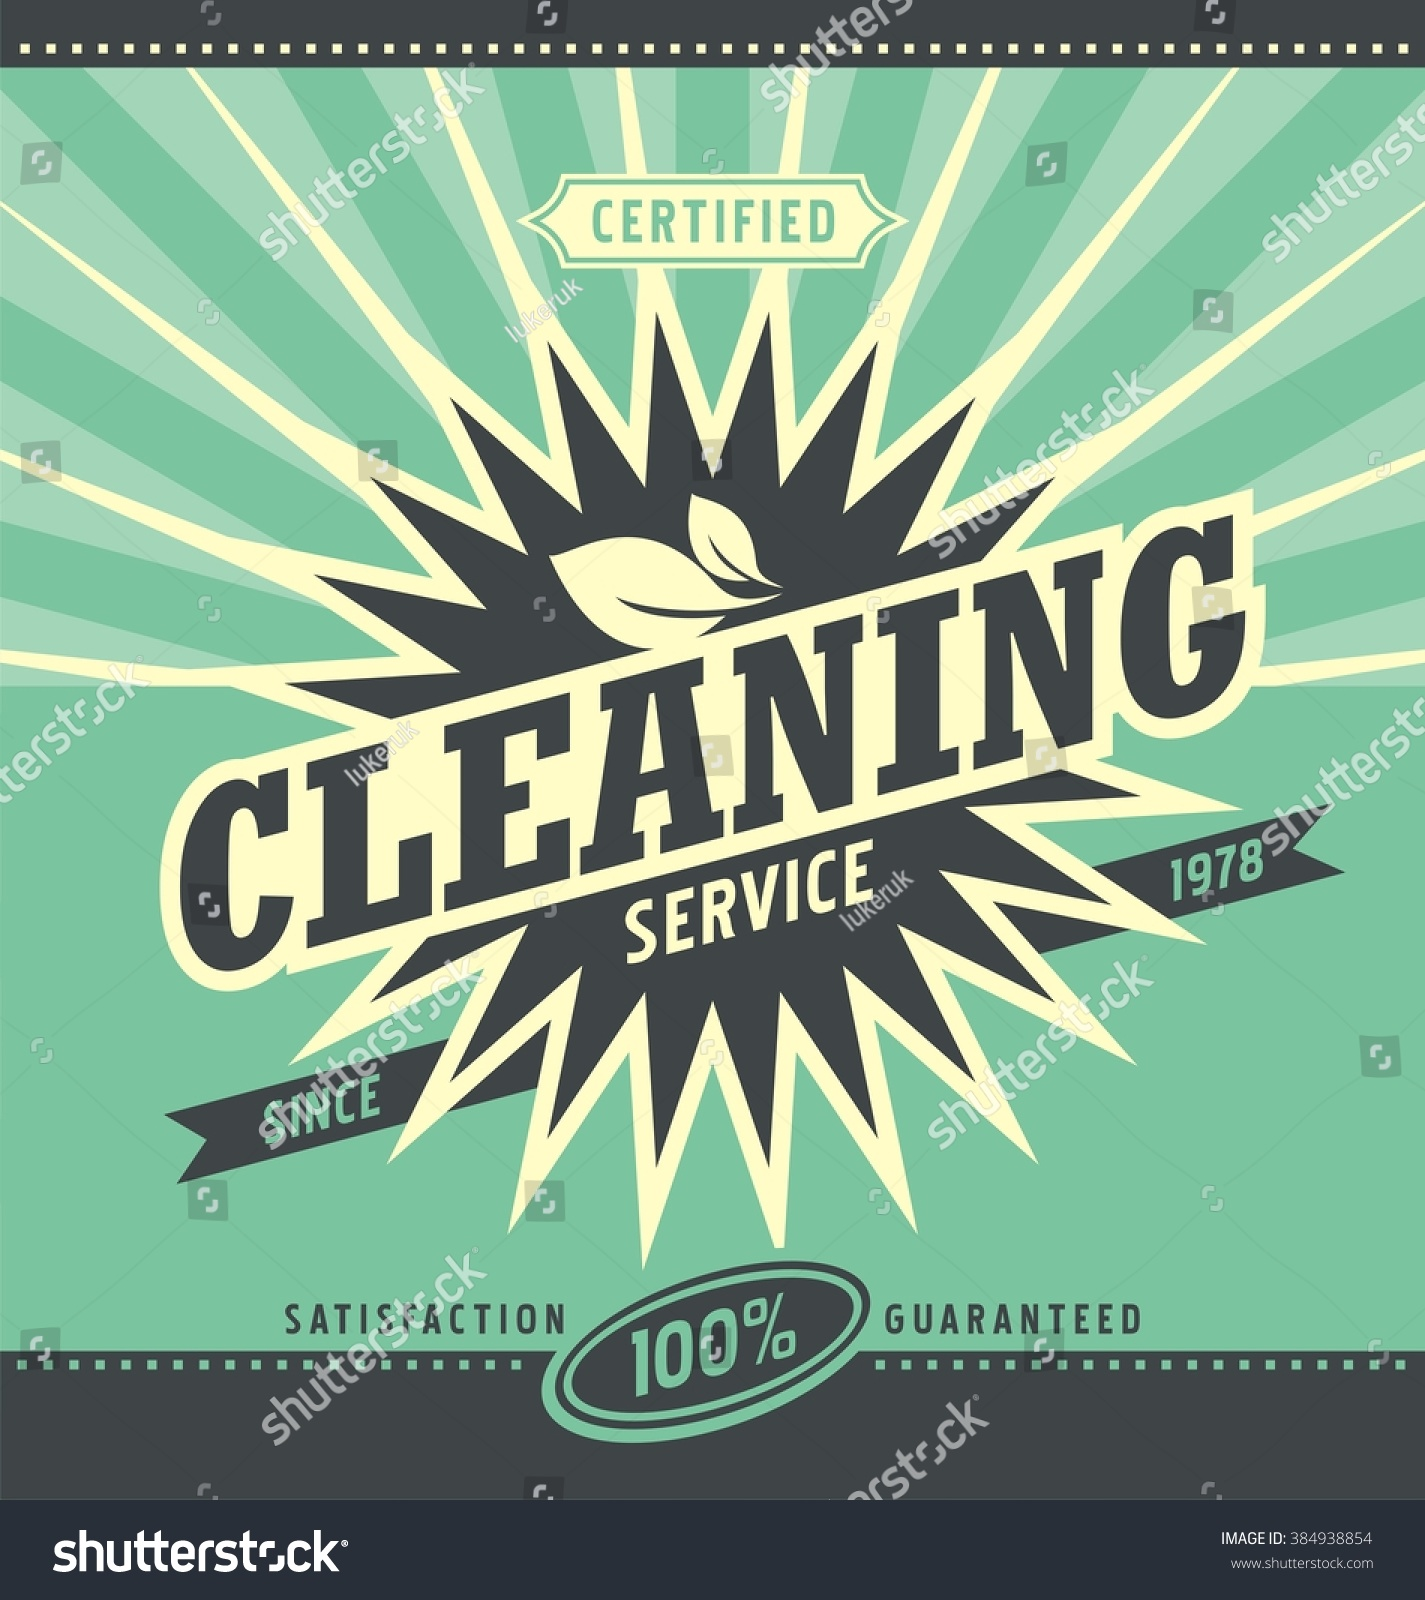 vintage ad design cleaning service retro stock vector  vintage ad design for cleaning service retro vector layout for professional residential and commercial cleaning